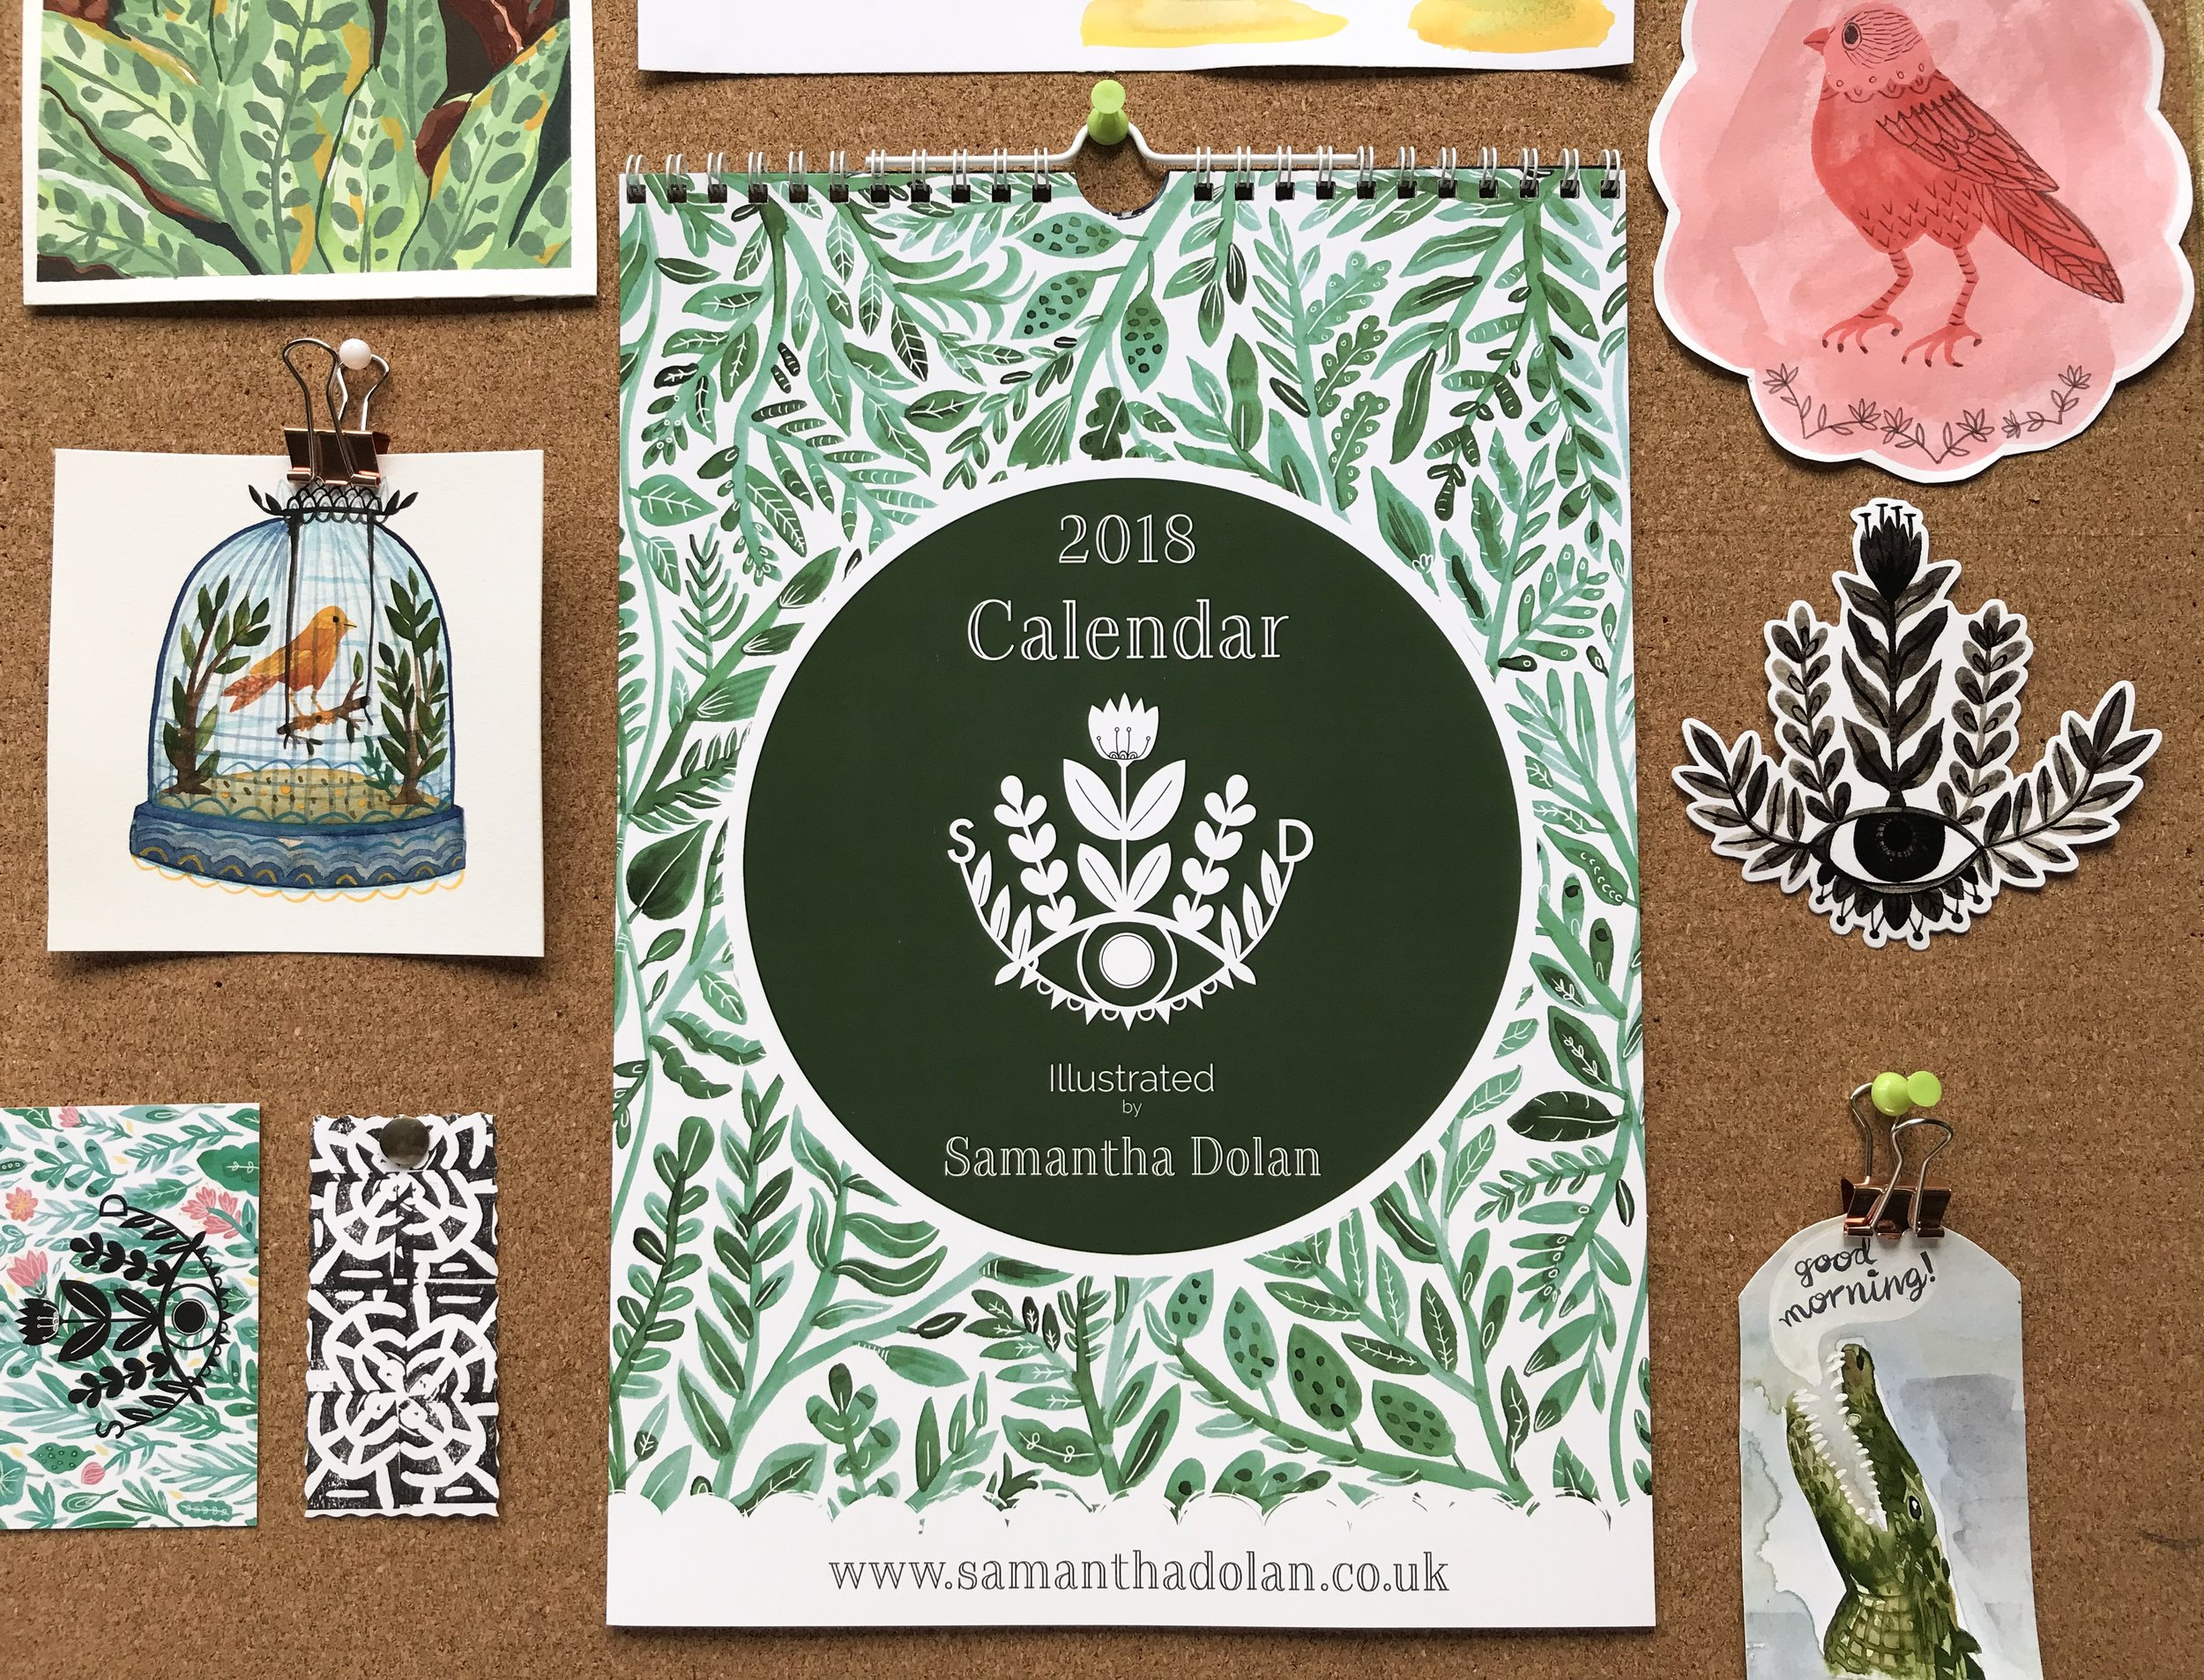 2018 a4 Calendar, created using a selection of different illustrations created in 2017.